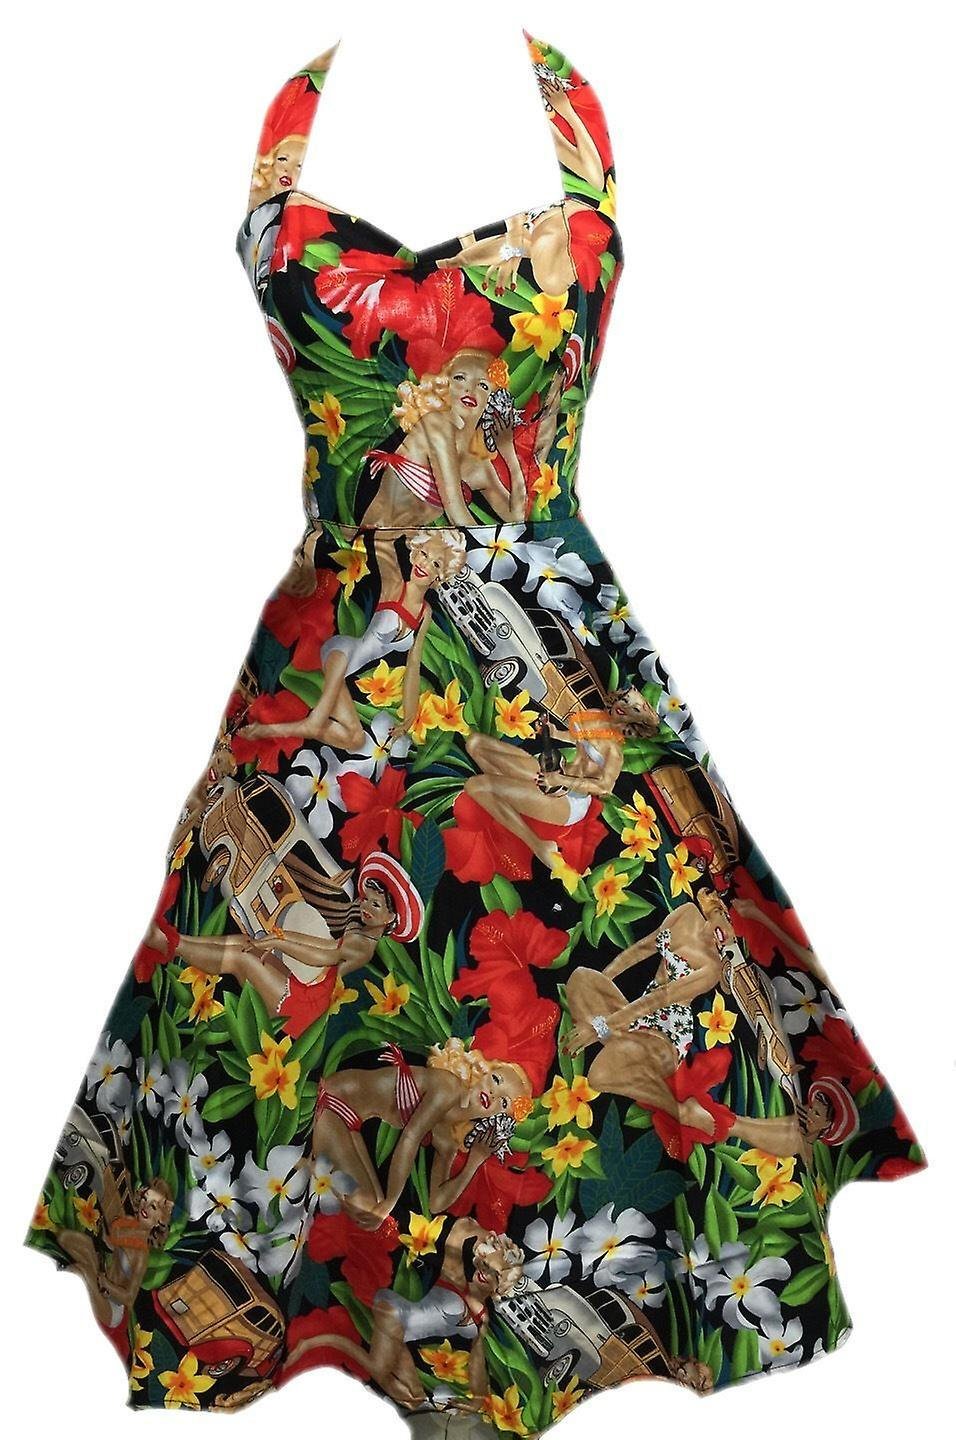 Vintage 50s Hepburn Dress Halter 1950s Style Beach Girl Print Pin Up Rockabilly